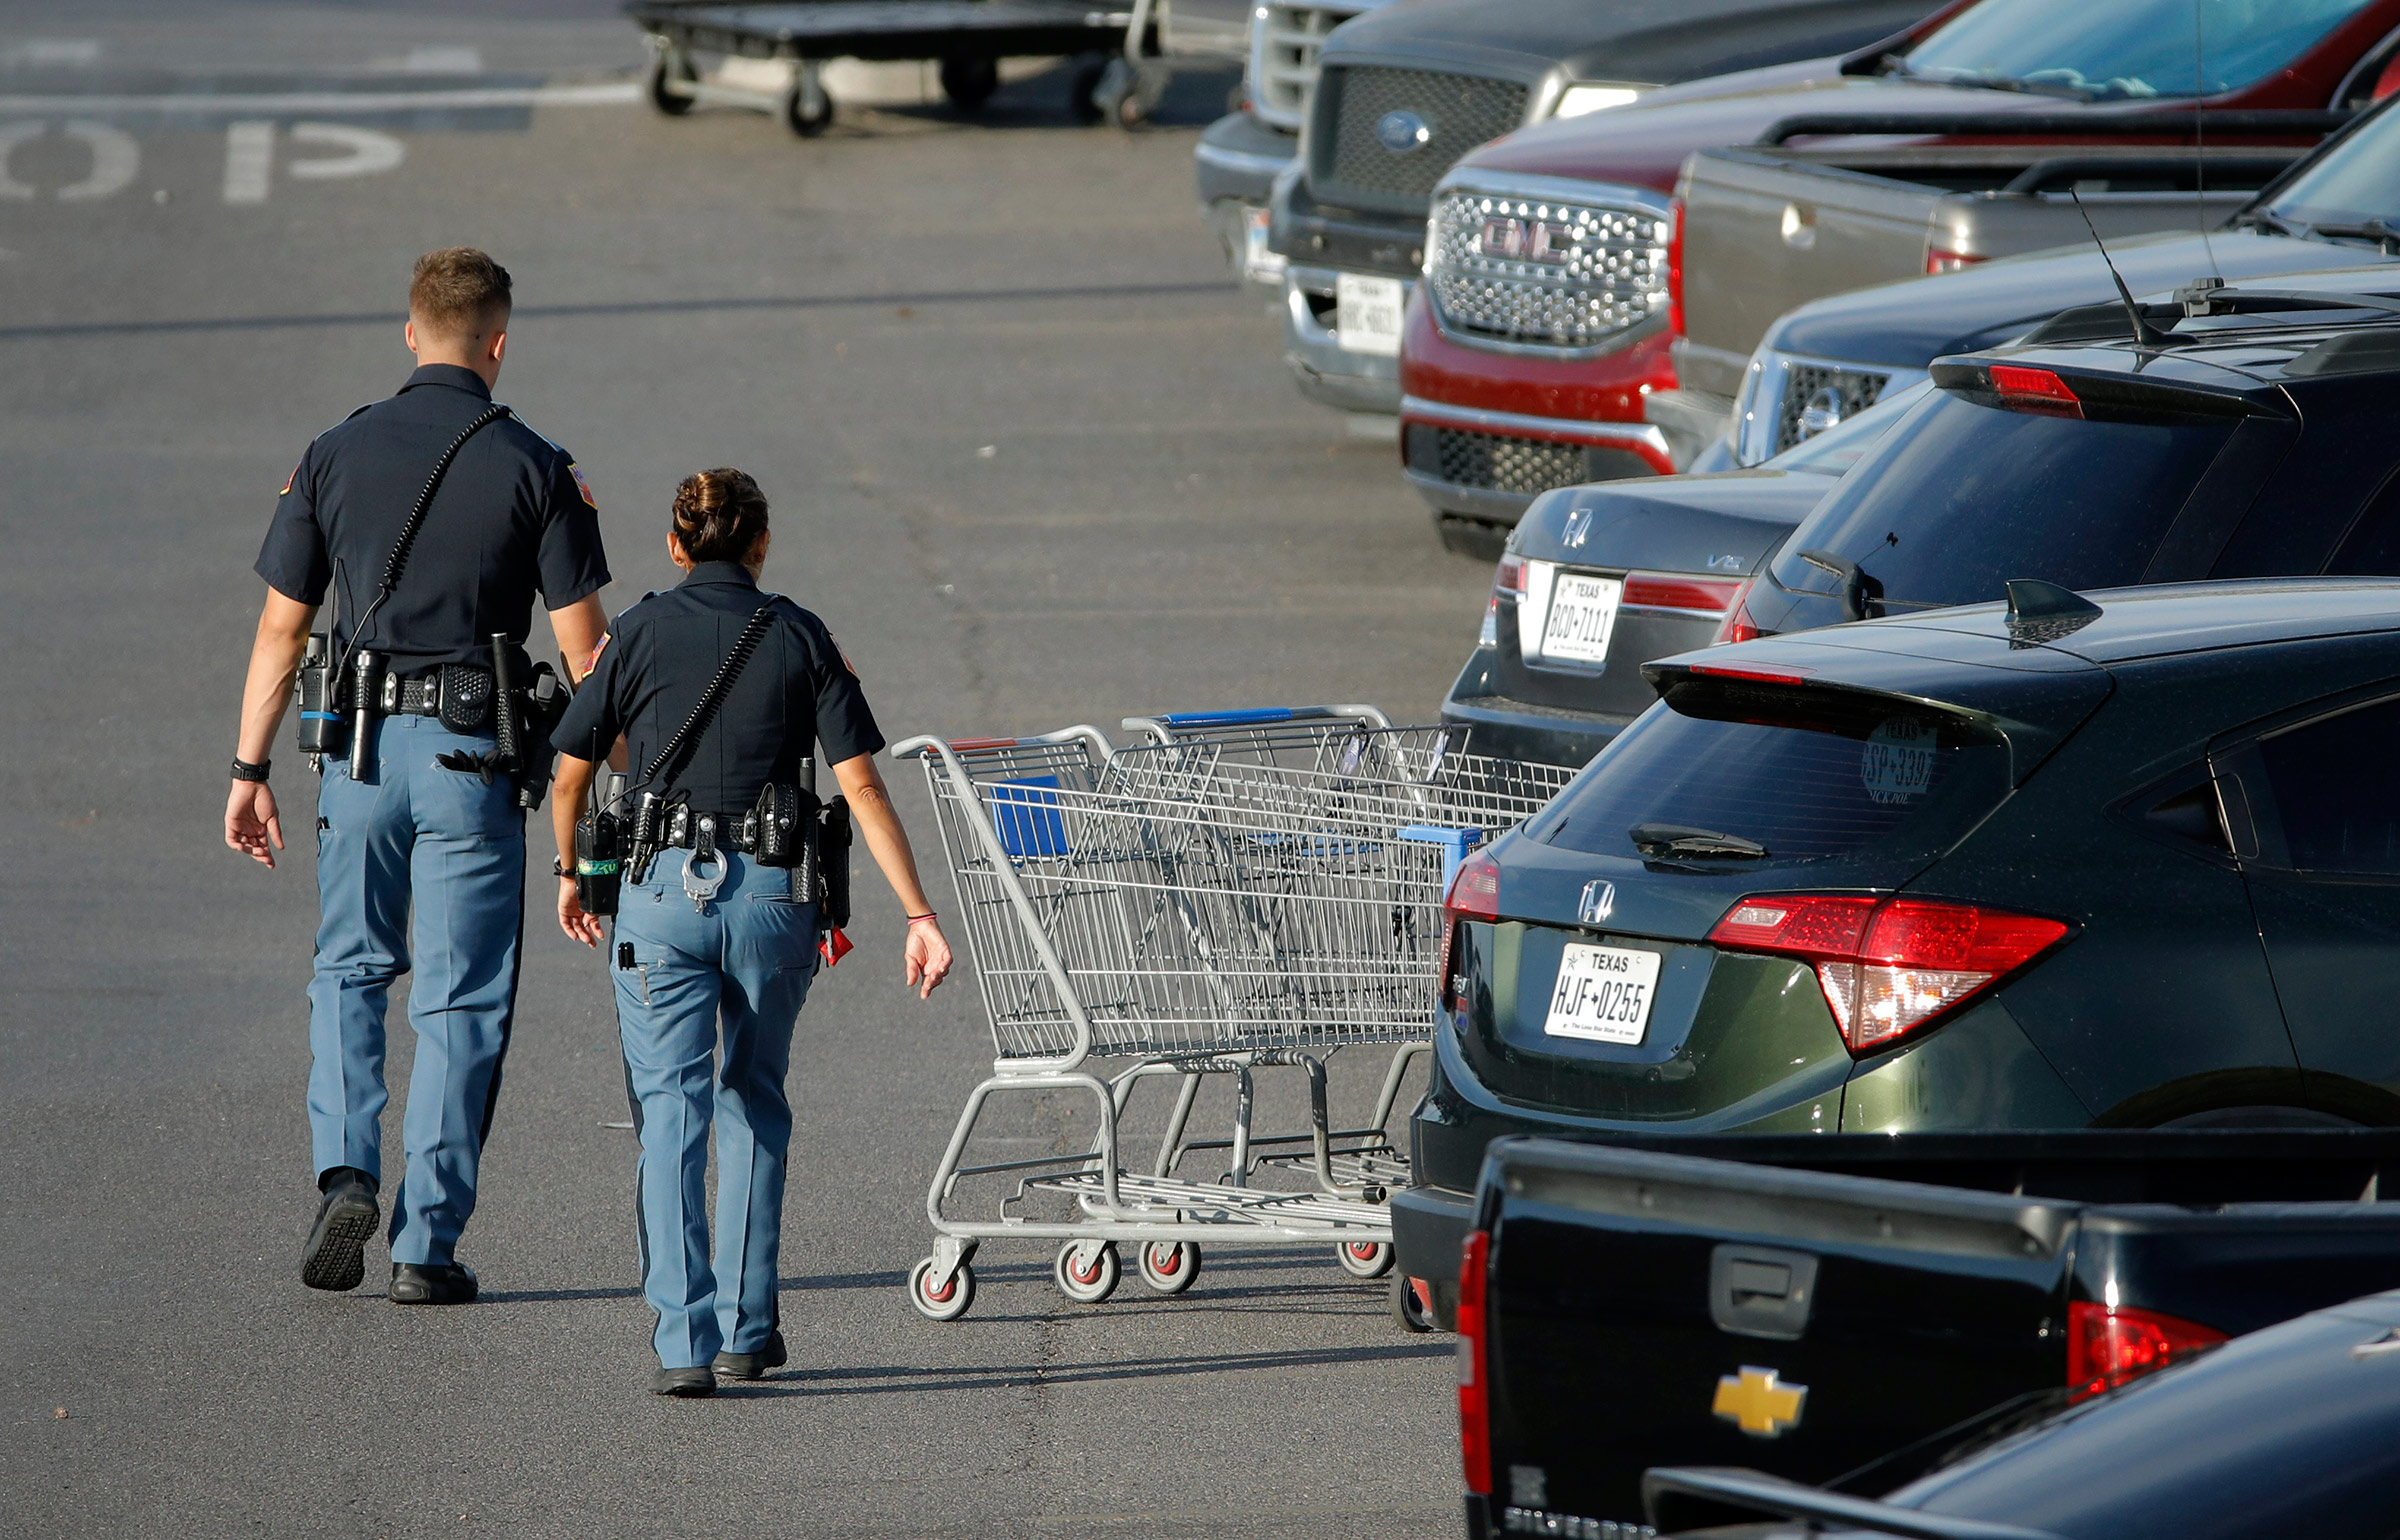 Police officers walk by shopping carts at the scene of the El Paso mass shooting, on Aug. 4